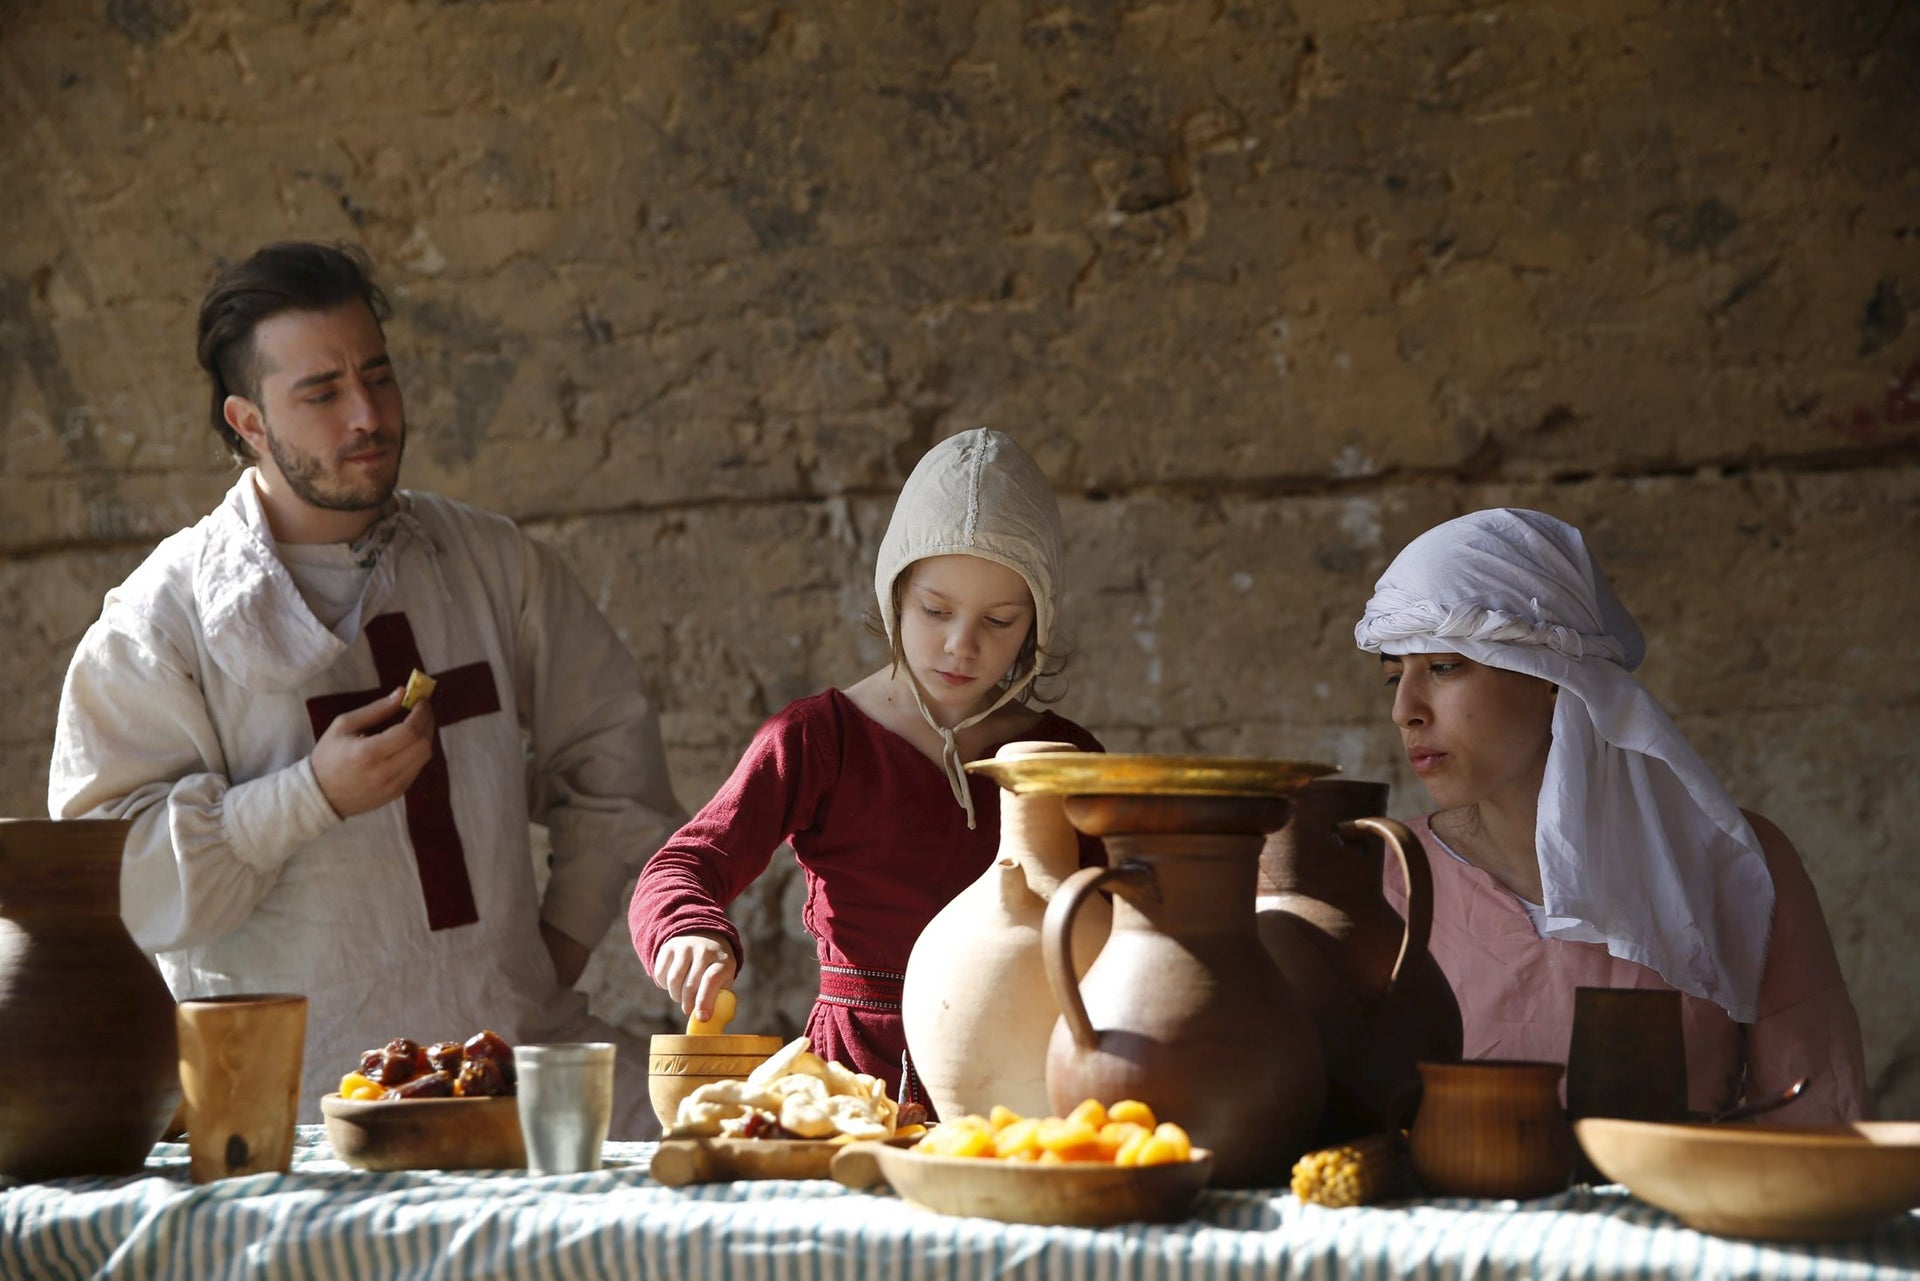 History enthusiasts dressed in costumes sit next to a table during an event to relive the experiences of pilgrims who travelled to Jerusalem during medieval times, at a historical fortress near the settlement of Ma'ale Adumim in the West Bank, east of Jerusalem, March 11, 2016.